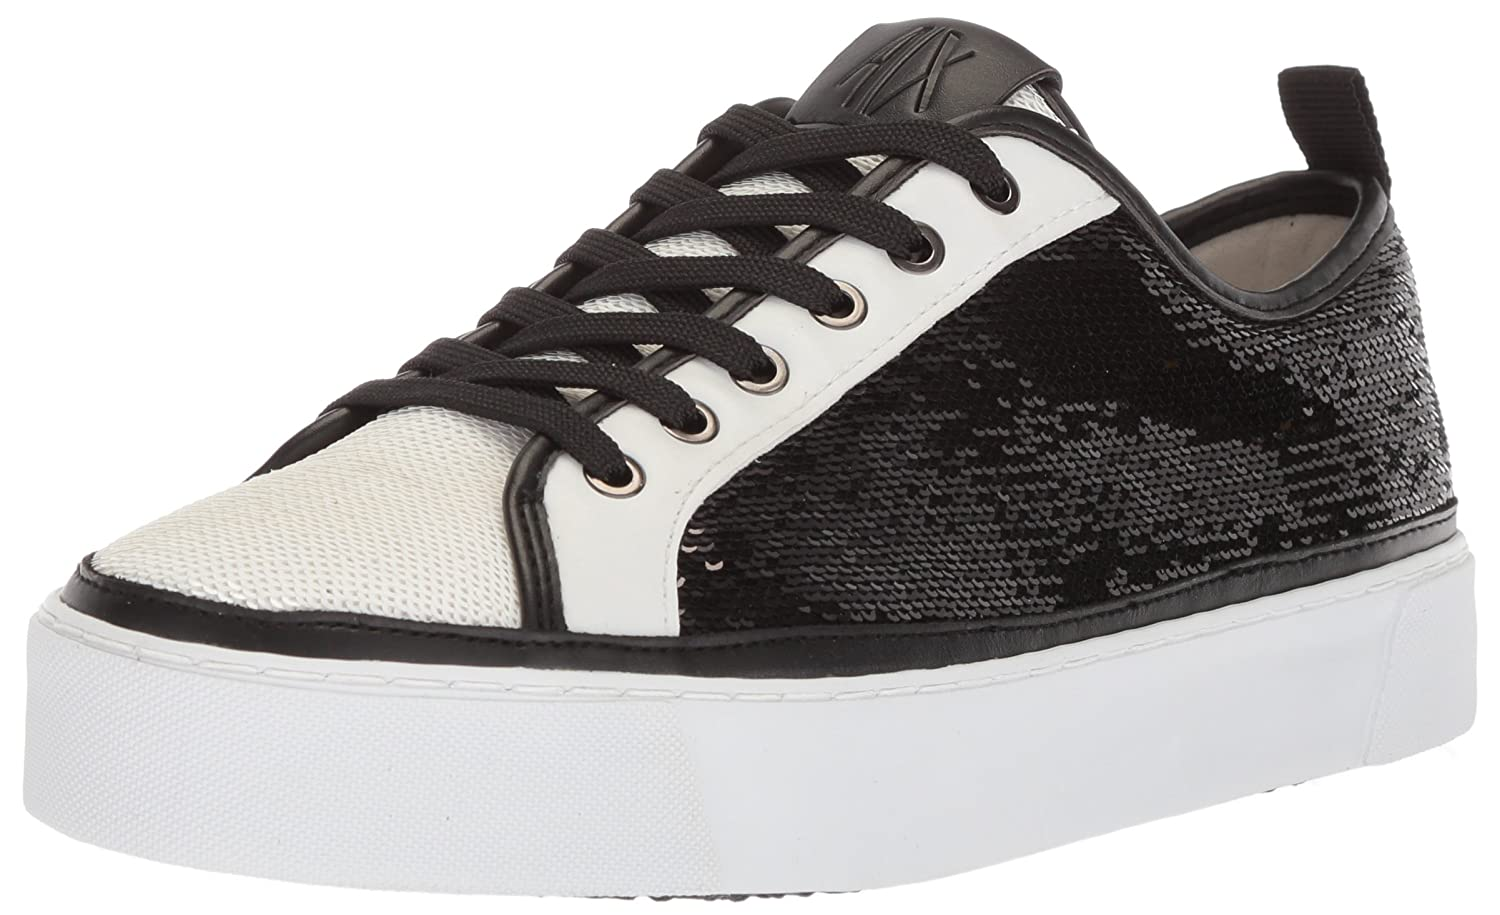 A|X Armani Exchange Women's Sequined Low Cut Sneaker B0749WD1L7 7 B(M) US|Bianco/Nero